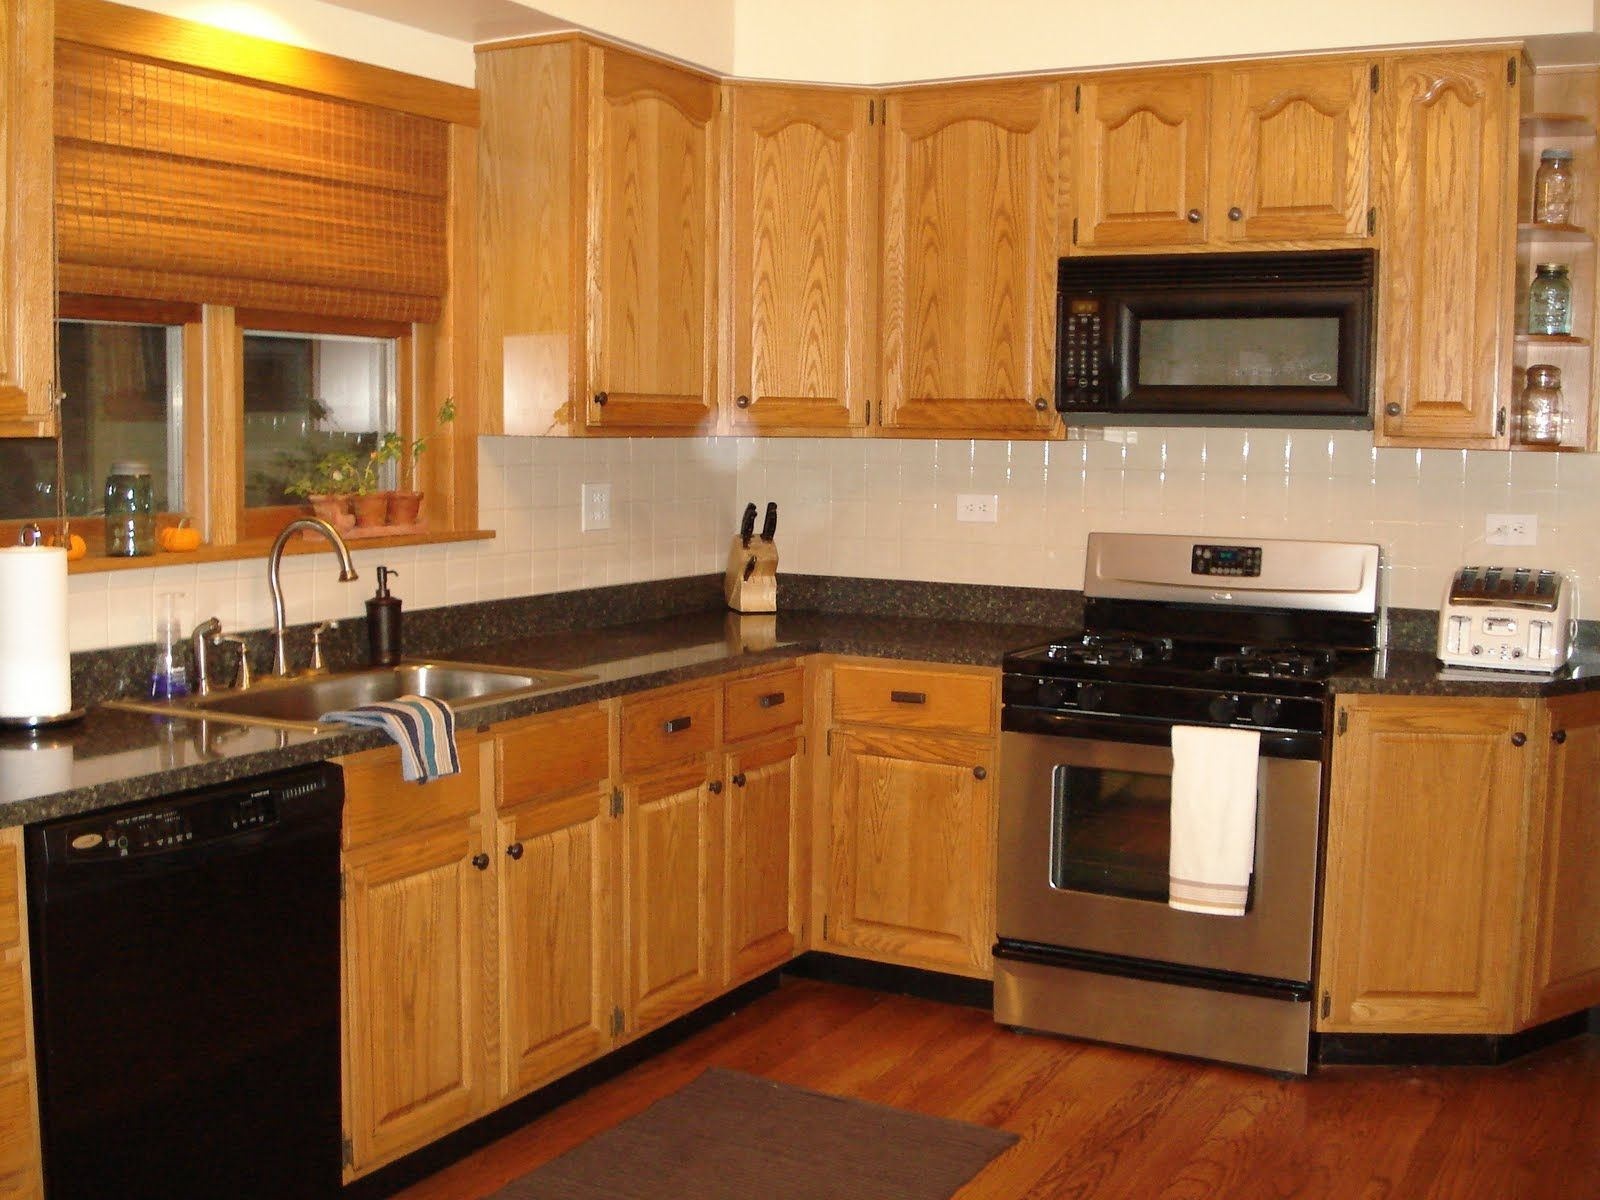 kitchen cabinet oak honey cabinets designs photos kerala from Honey ...